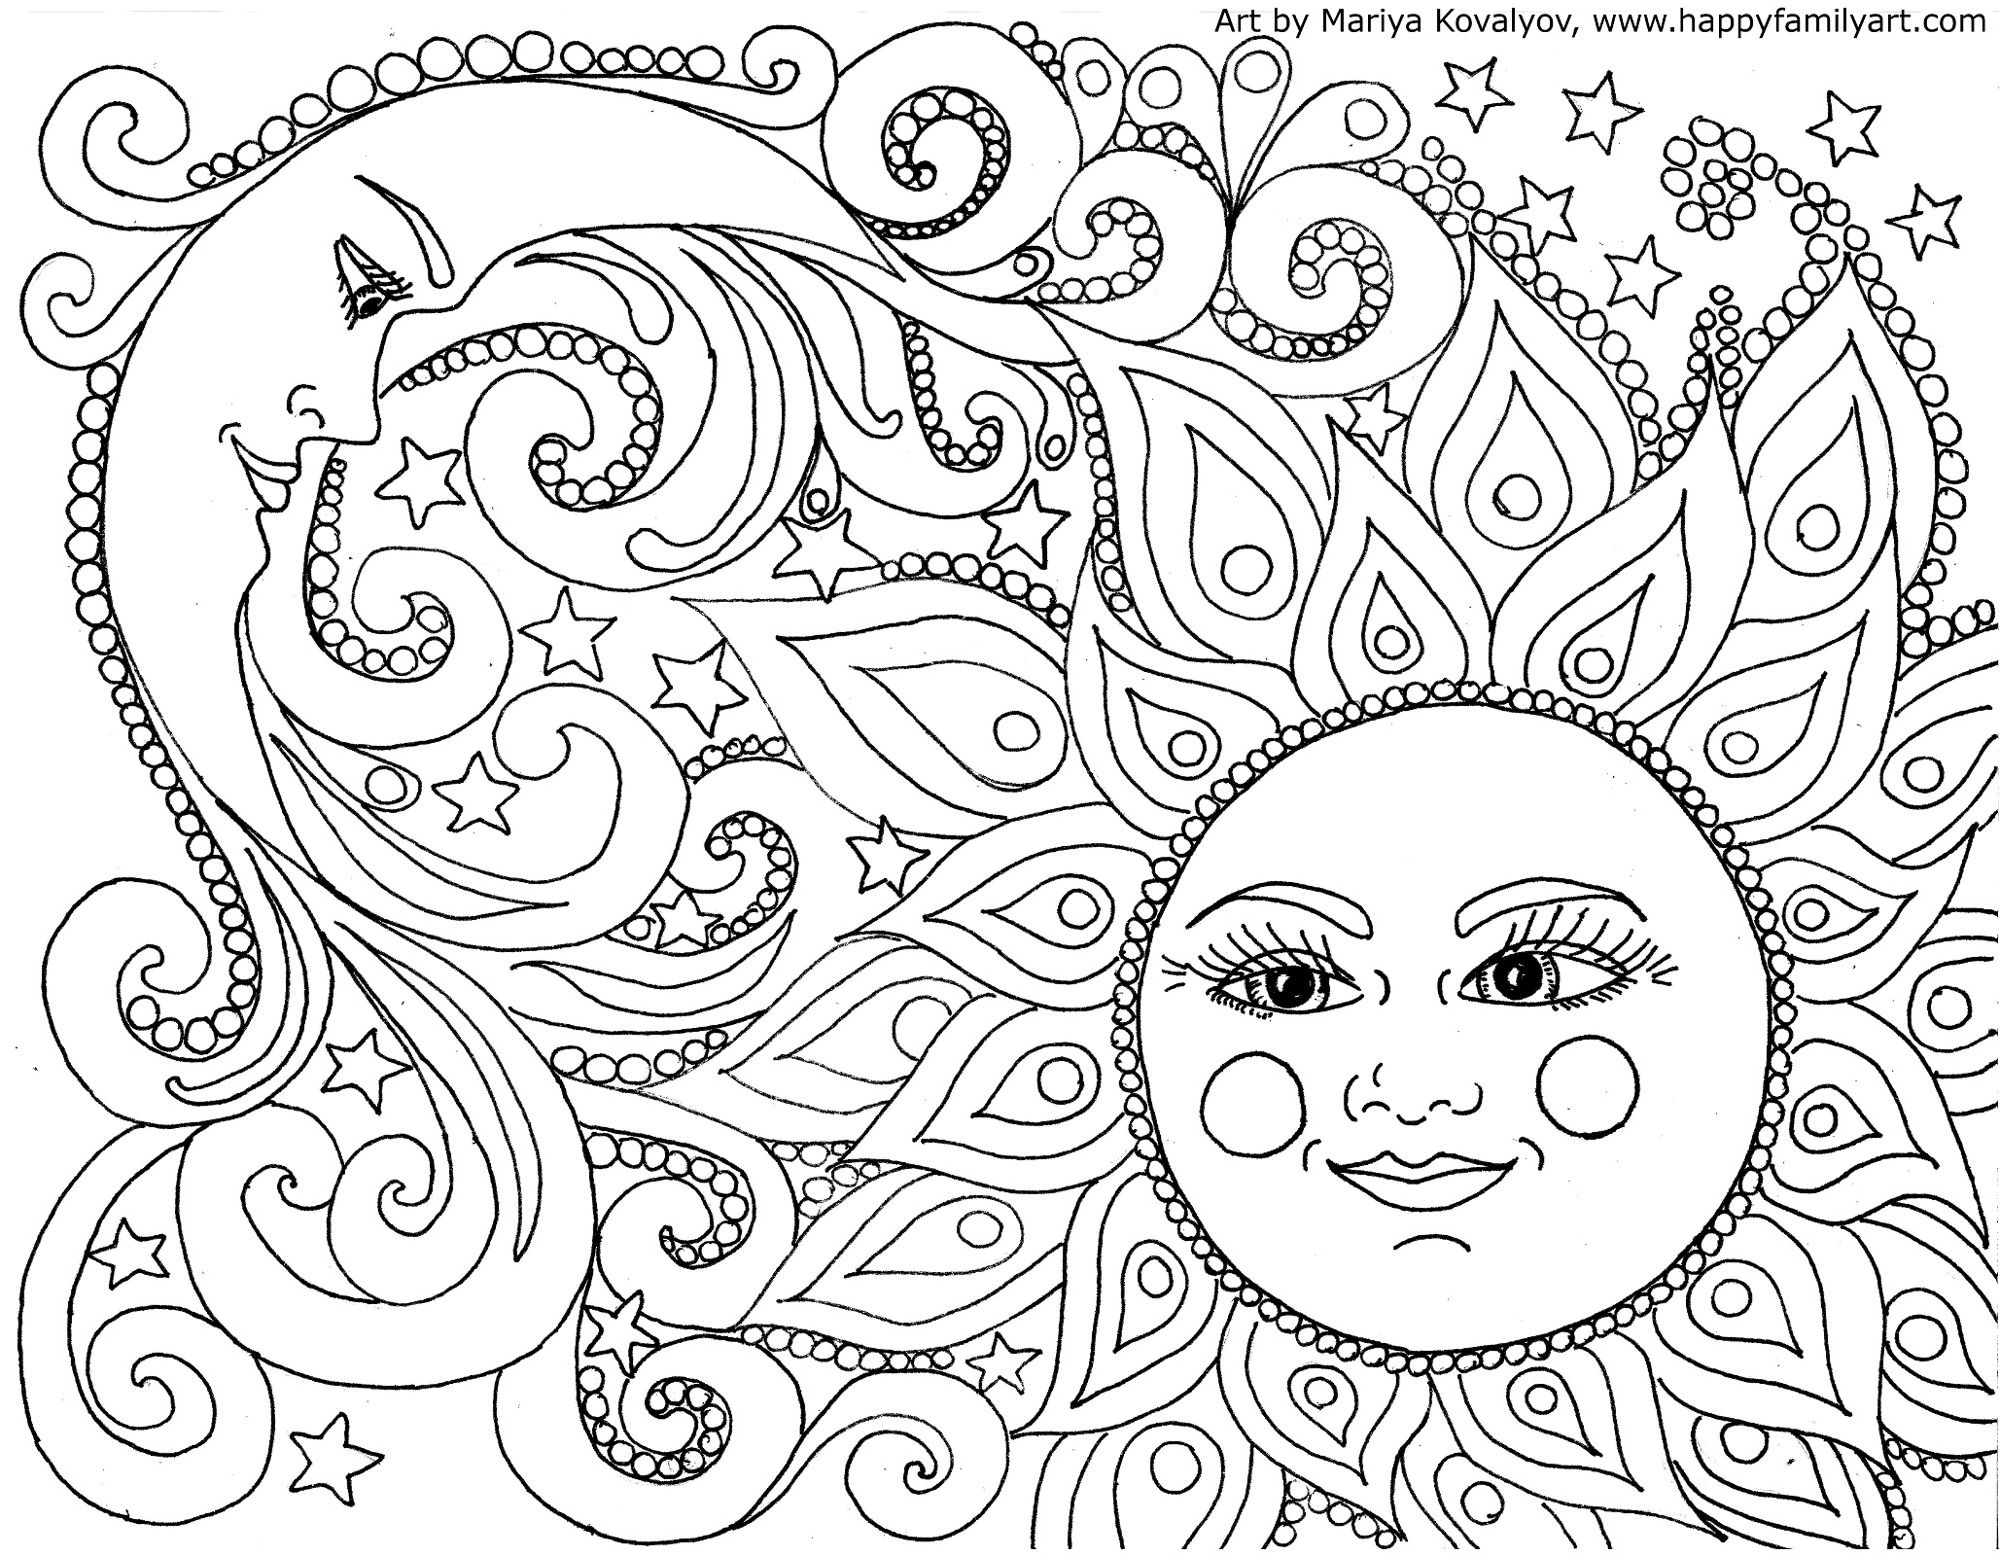 i made many great fun and original coloring pages color your heart out - Coloring Paper